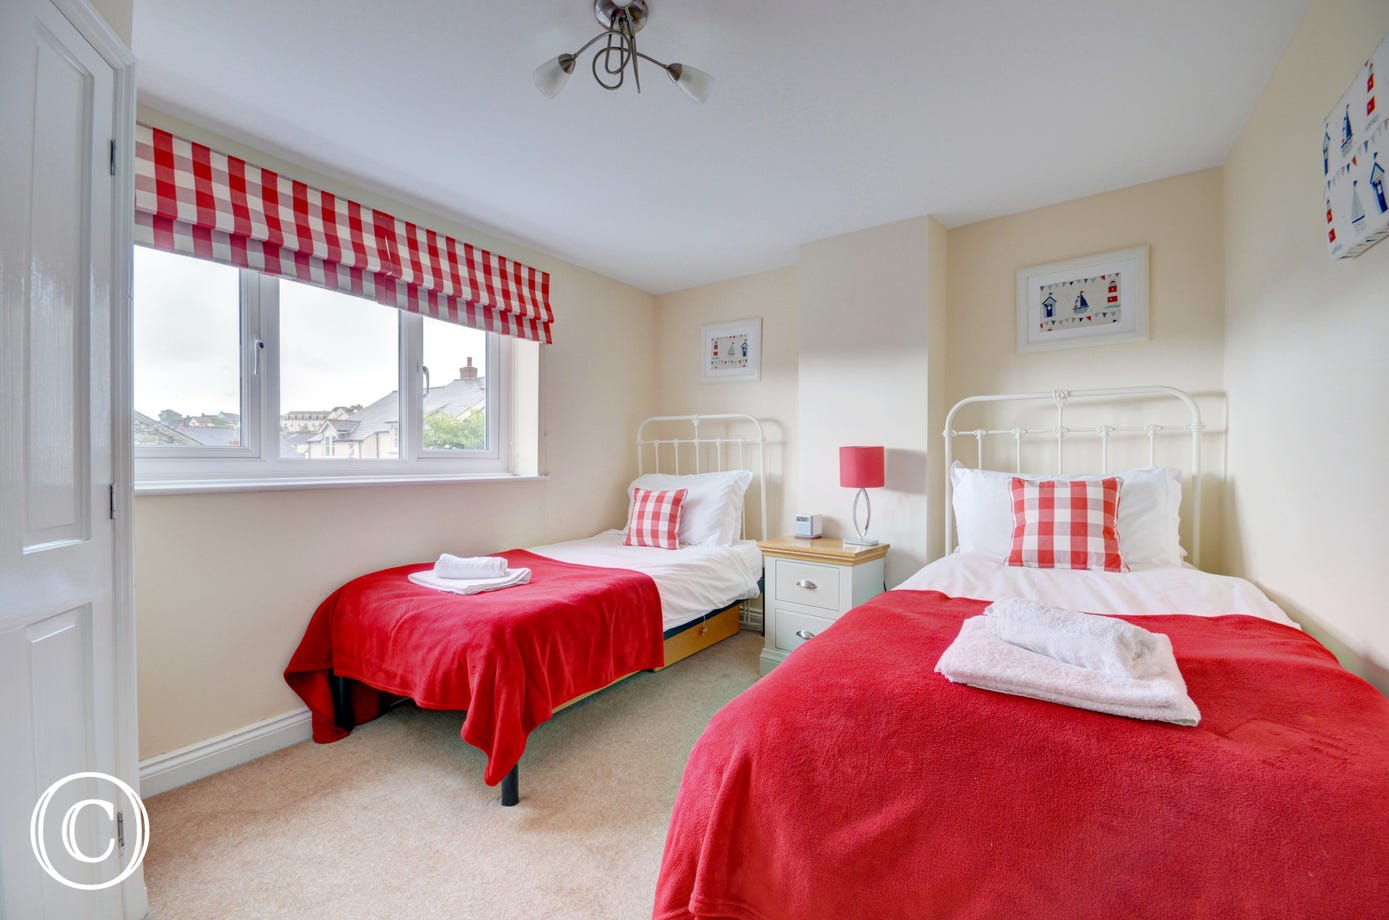 The Twin bedroom is brightly decorated and has ensuite facilities